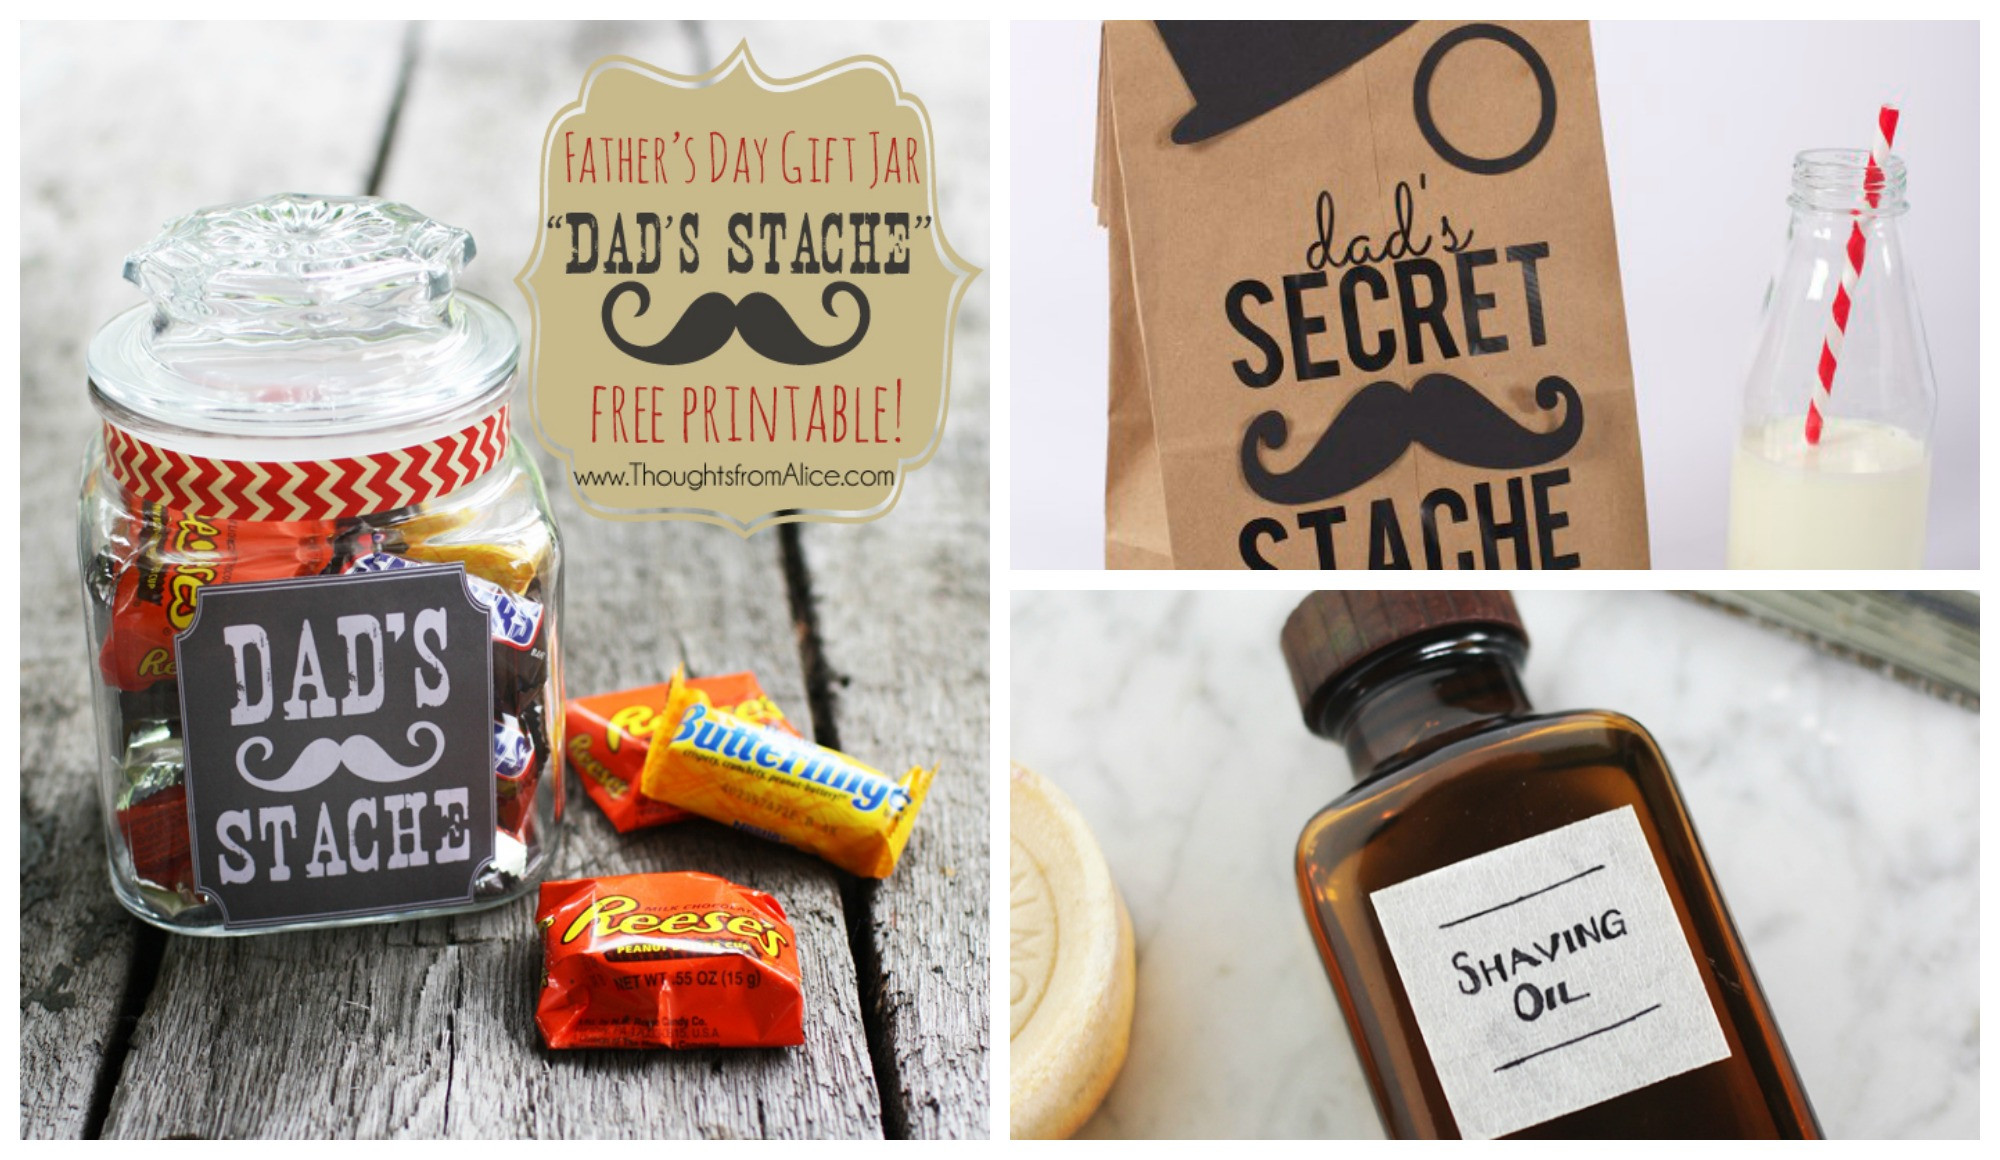 Best ideas about Fathers Day DIY Gifts . Save or Pin 10 Amazing Father s Day DIY Gift Ideas Now.